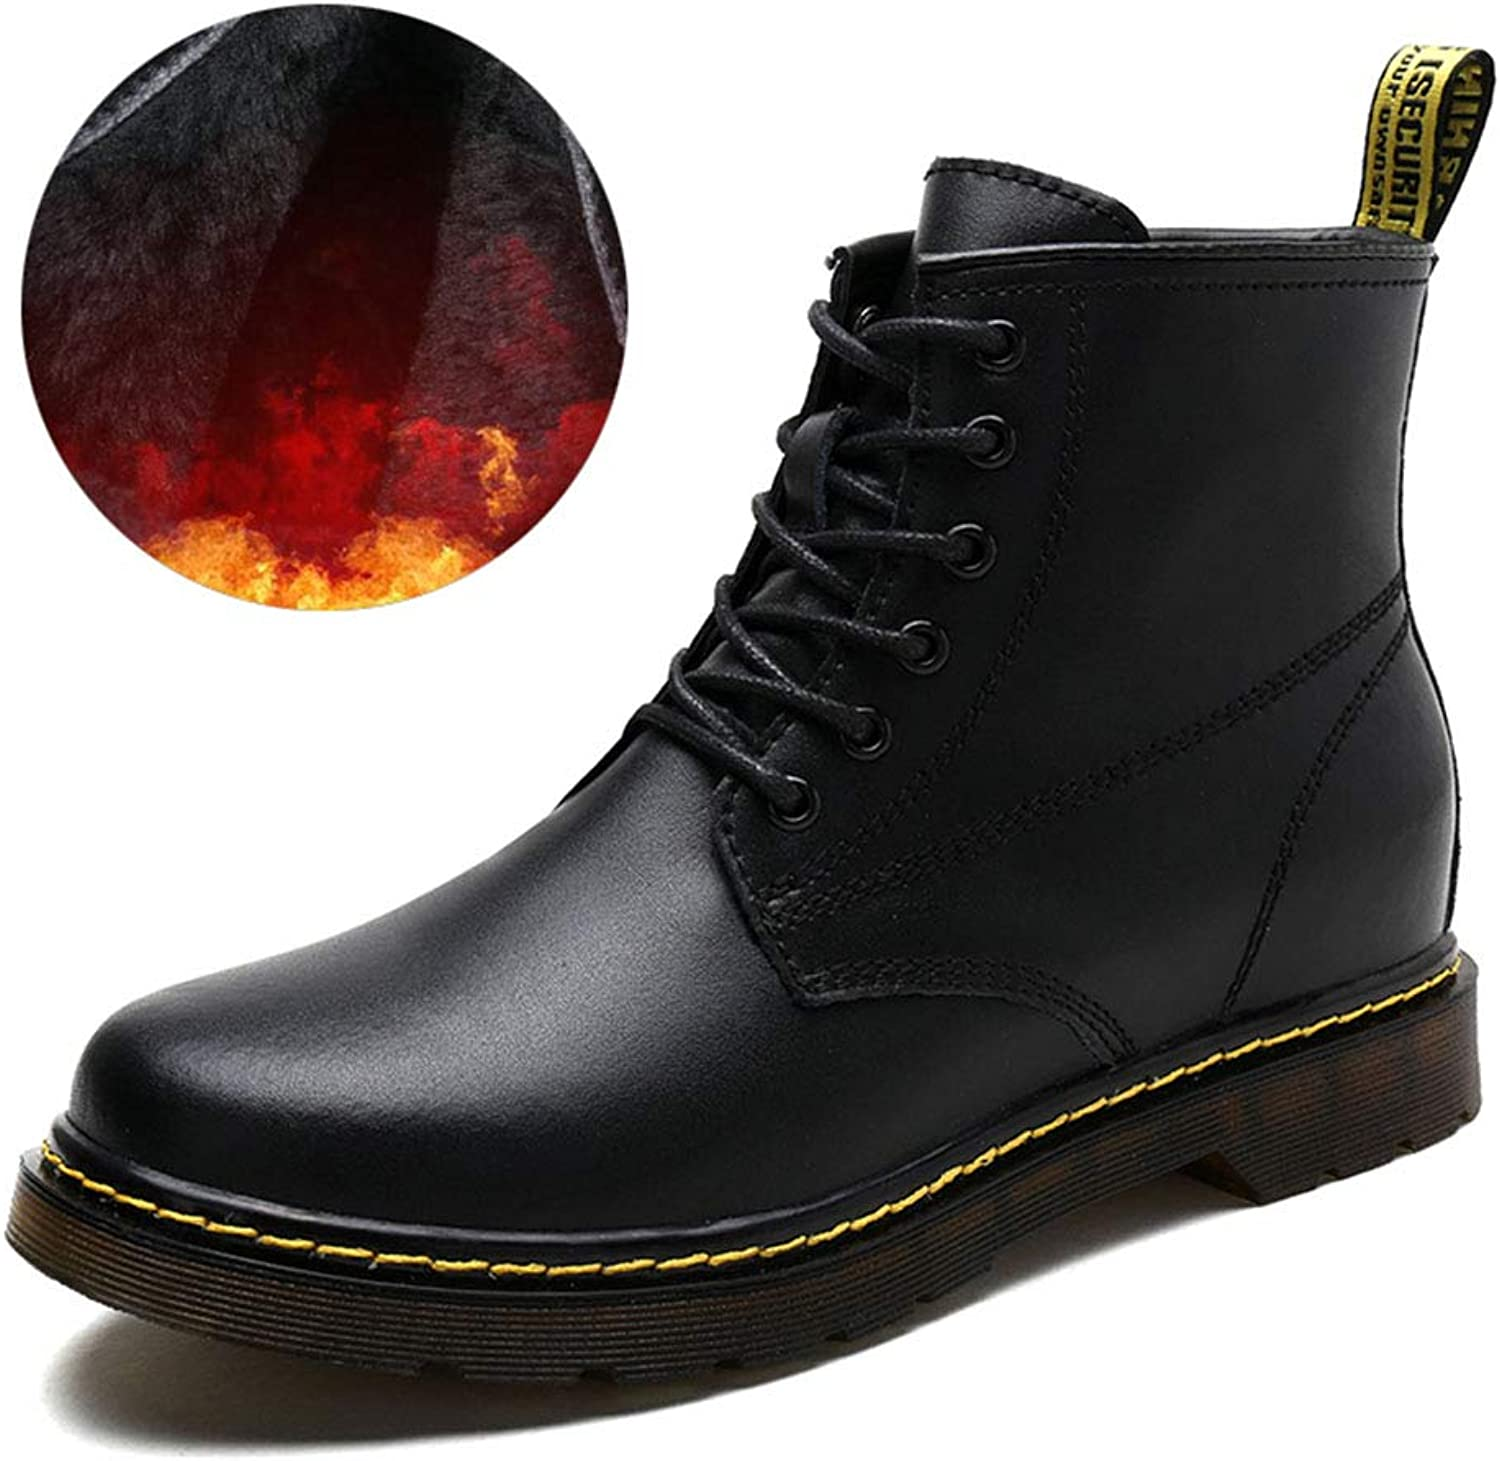 Men's Boots, Leather Fall Winter Martin Boots Retro Plus Velvet Anti-Slip Height Increase Outdoor Tooling Boots Trend High shoes Comfortable Running Boot Walking Boot Hiking Boot High-Top Boot XUE